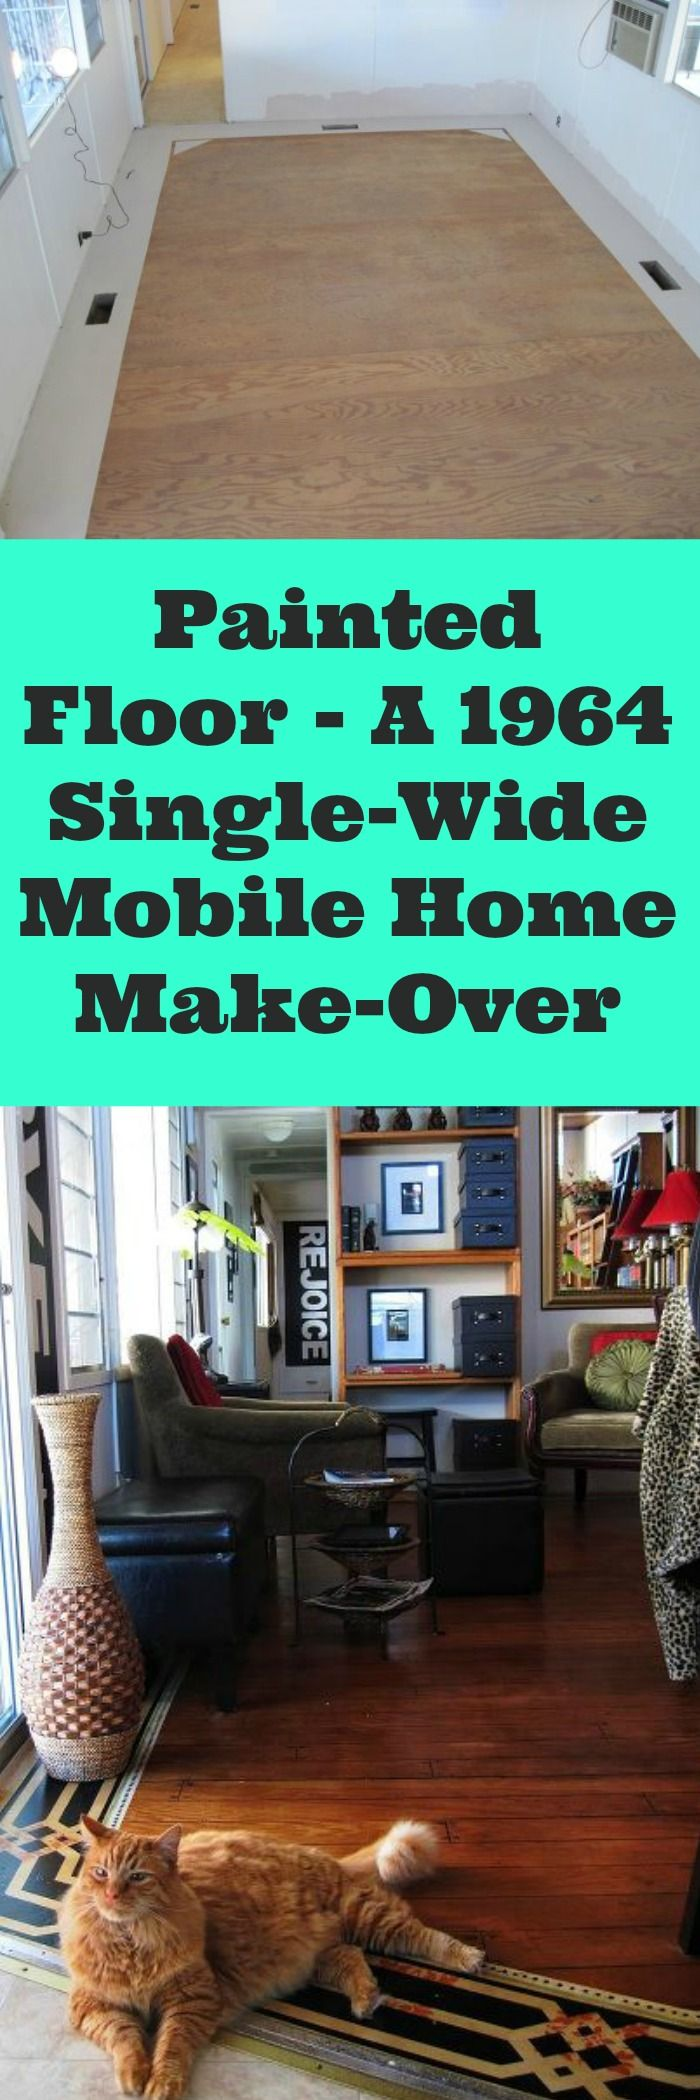 Remodeling A Mobile Home Ideas